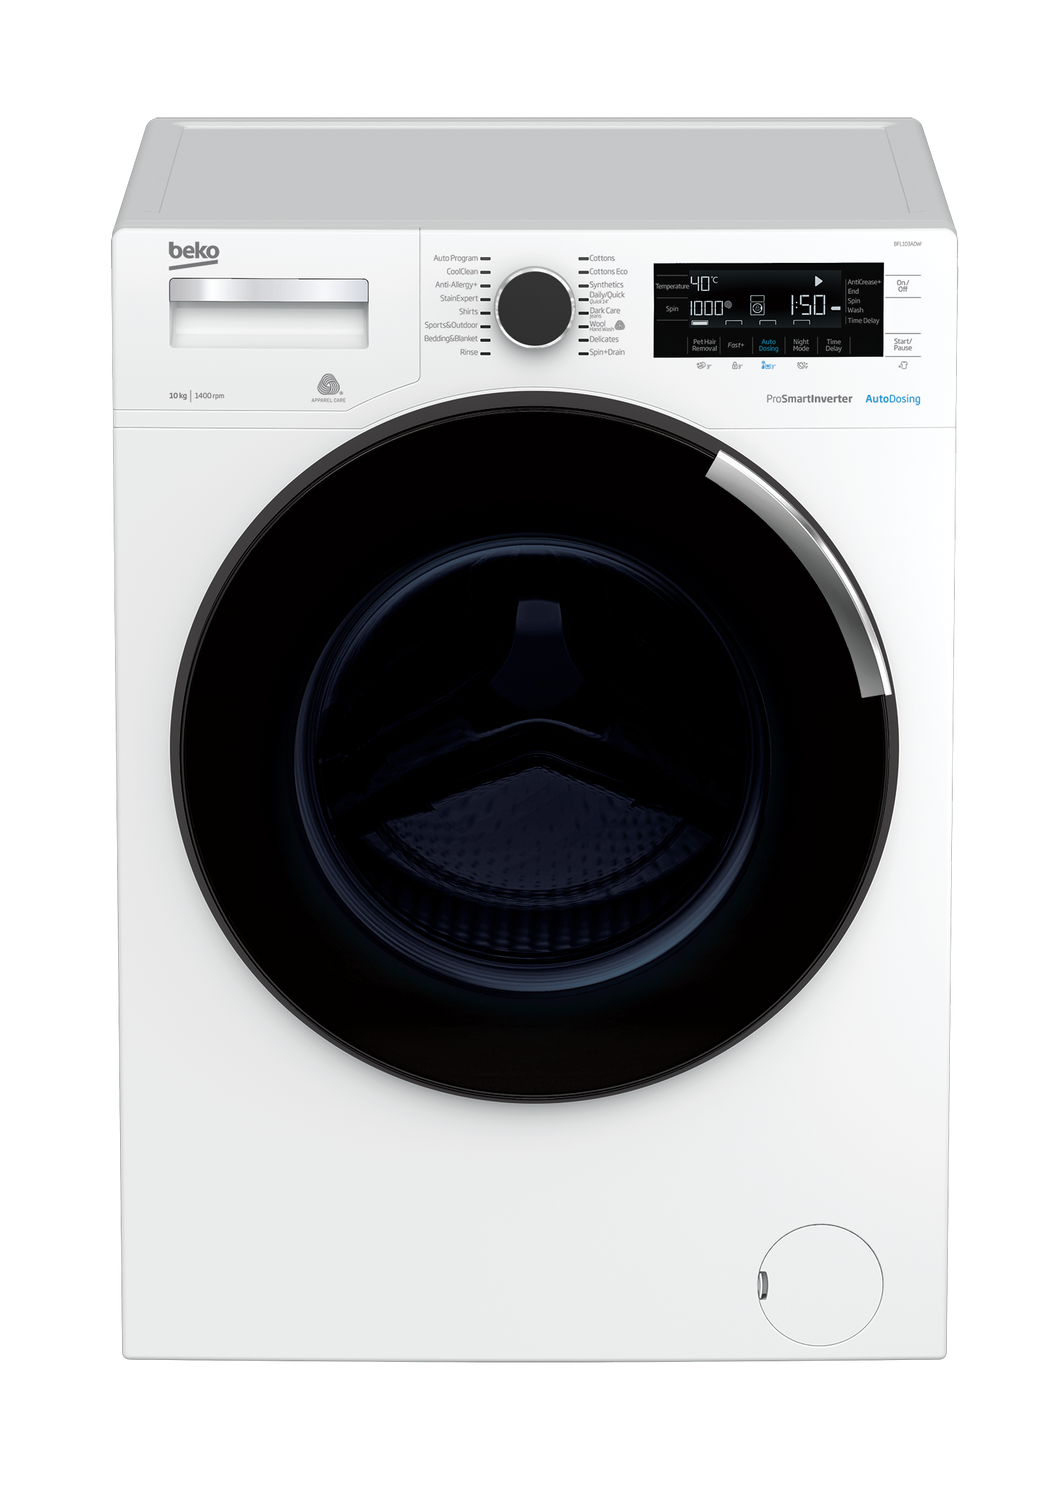 [Brand New] Beko BFL103ADW 10kg Front Loader with AutoDosing - 5 Years Warranty